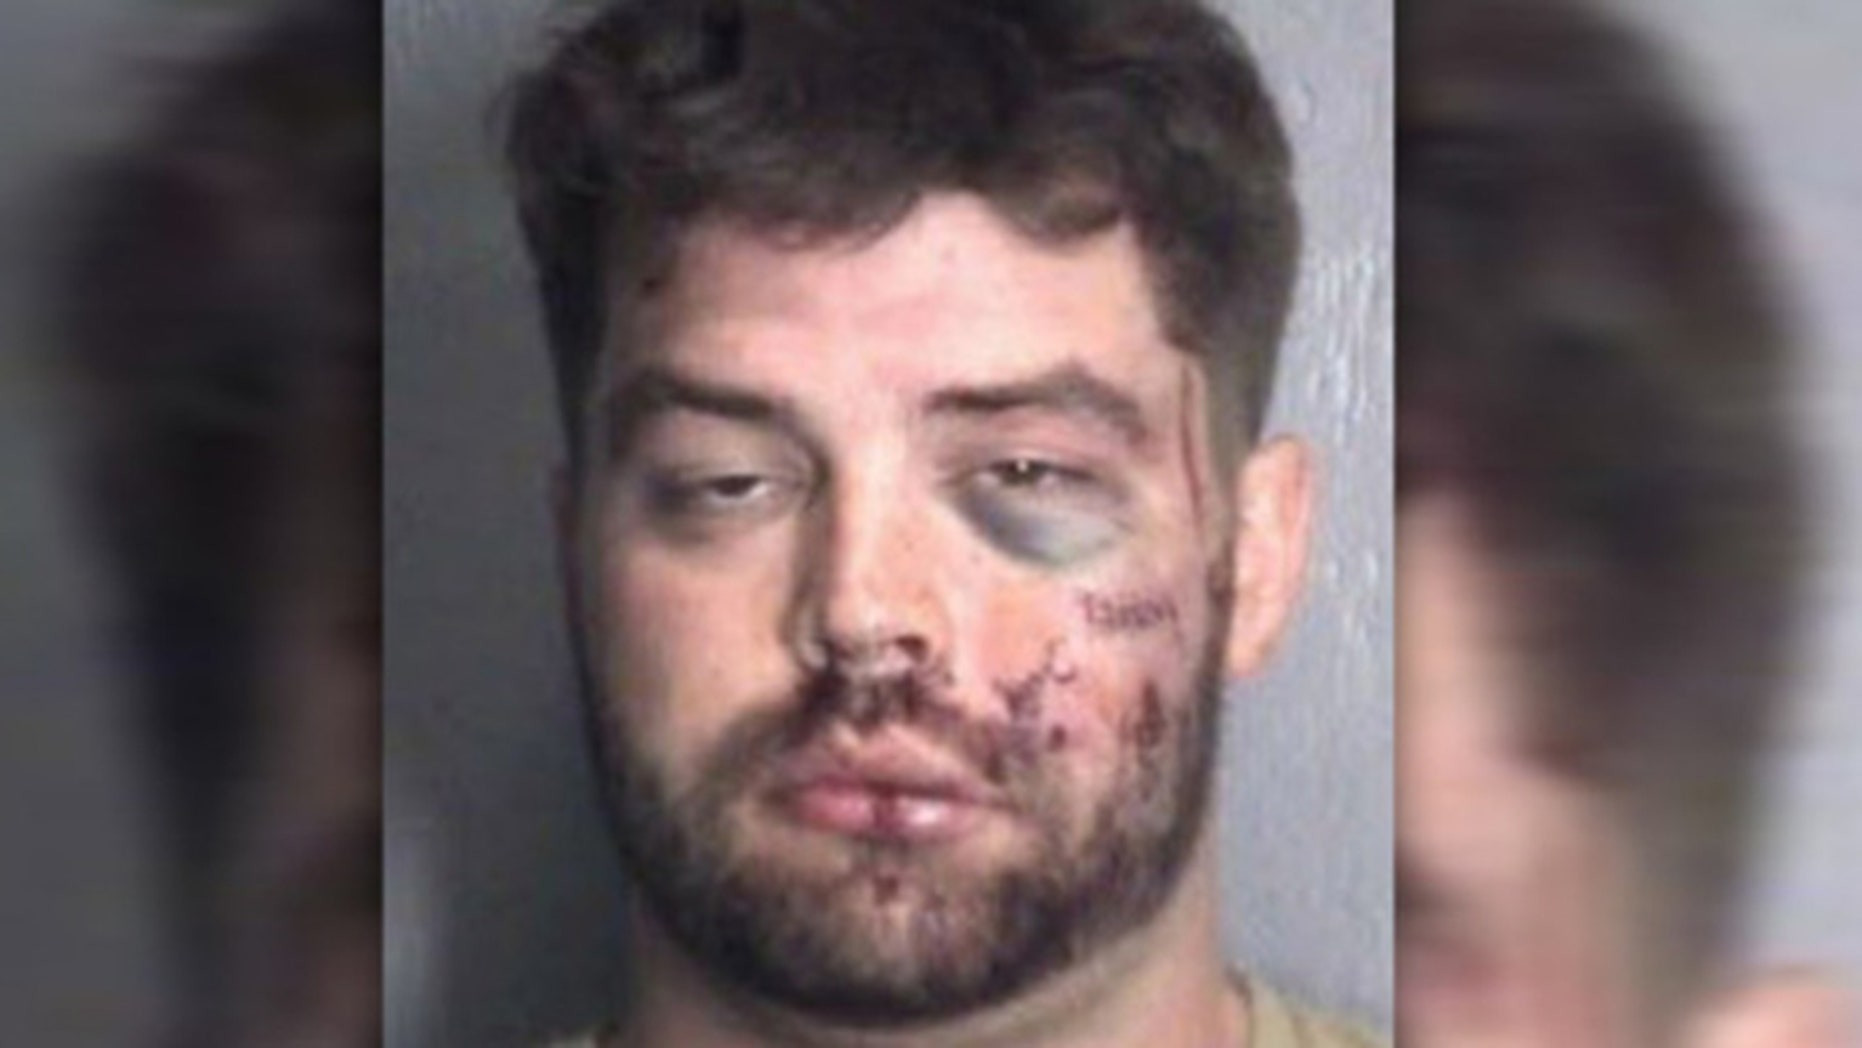 John Alexander Bracken is accused of breaking into a home and getting into a fight with a resident.